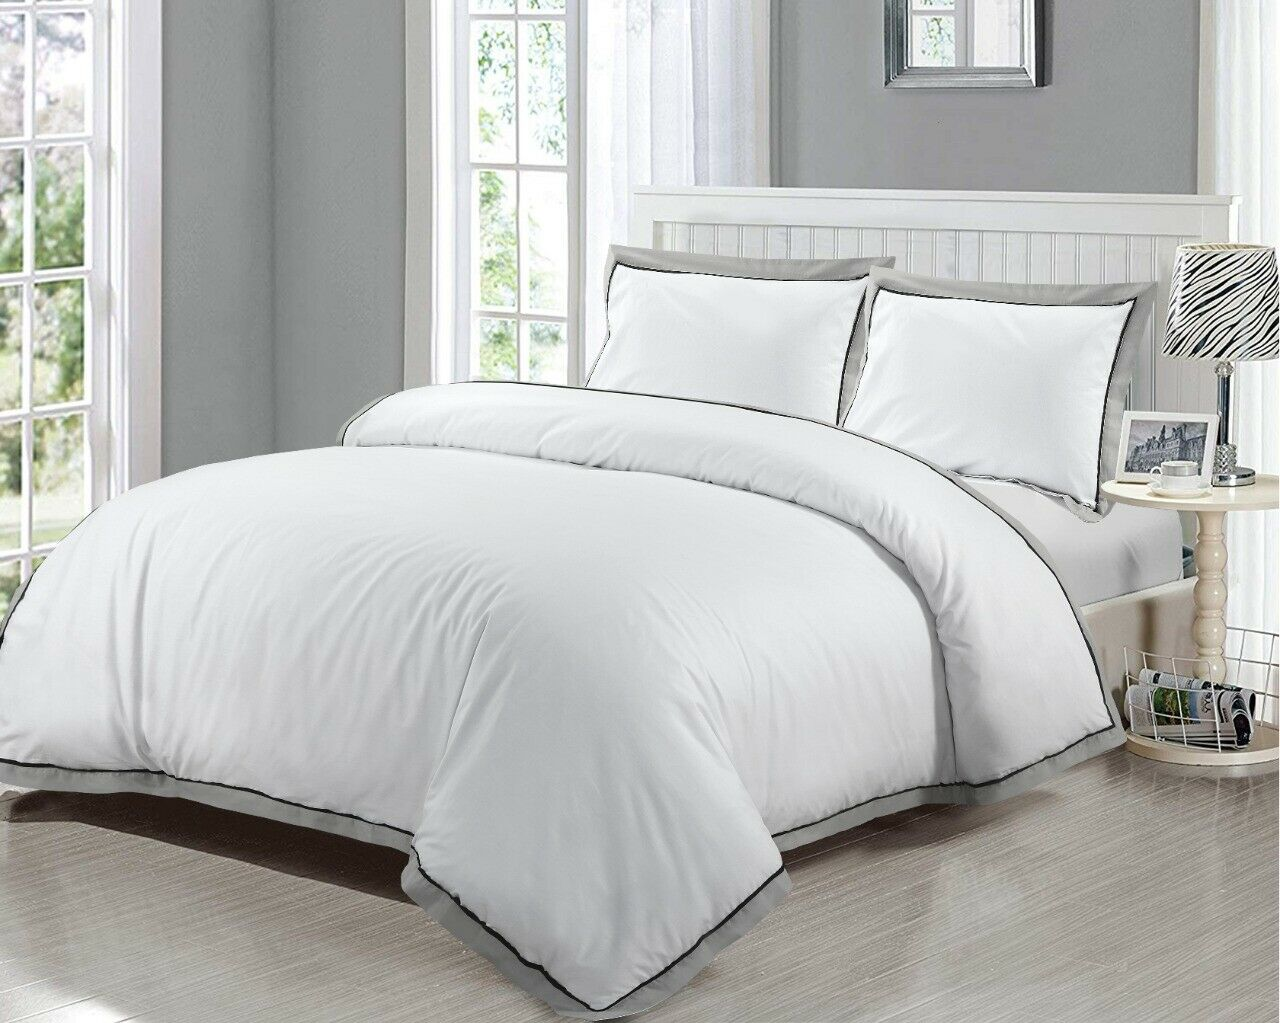 White Duvet Cover With Pillow Cases 100 Egyptian Cotton 400 Thread Co Threadnine